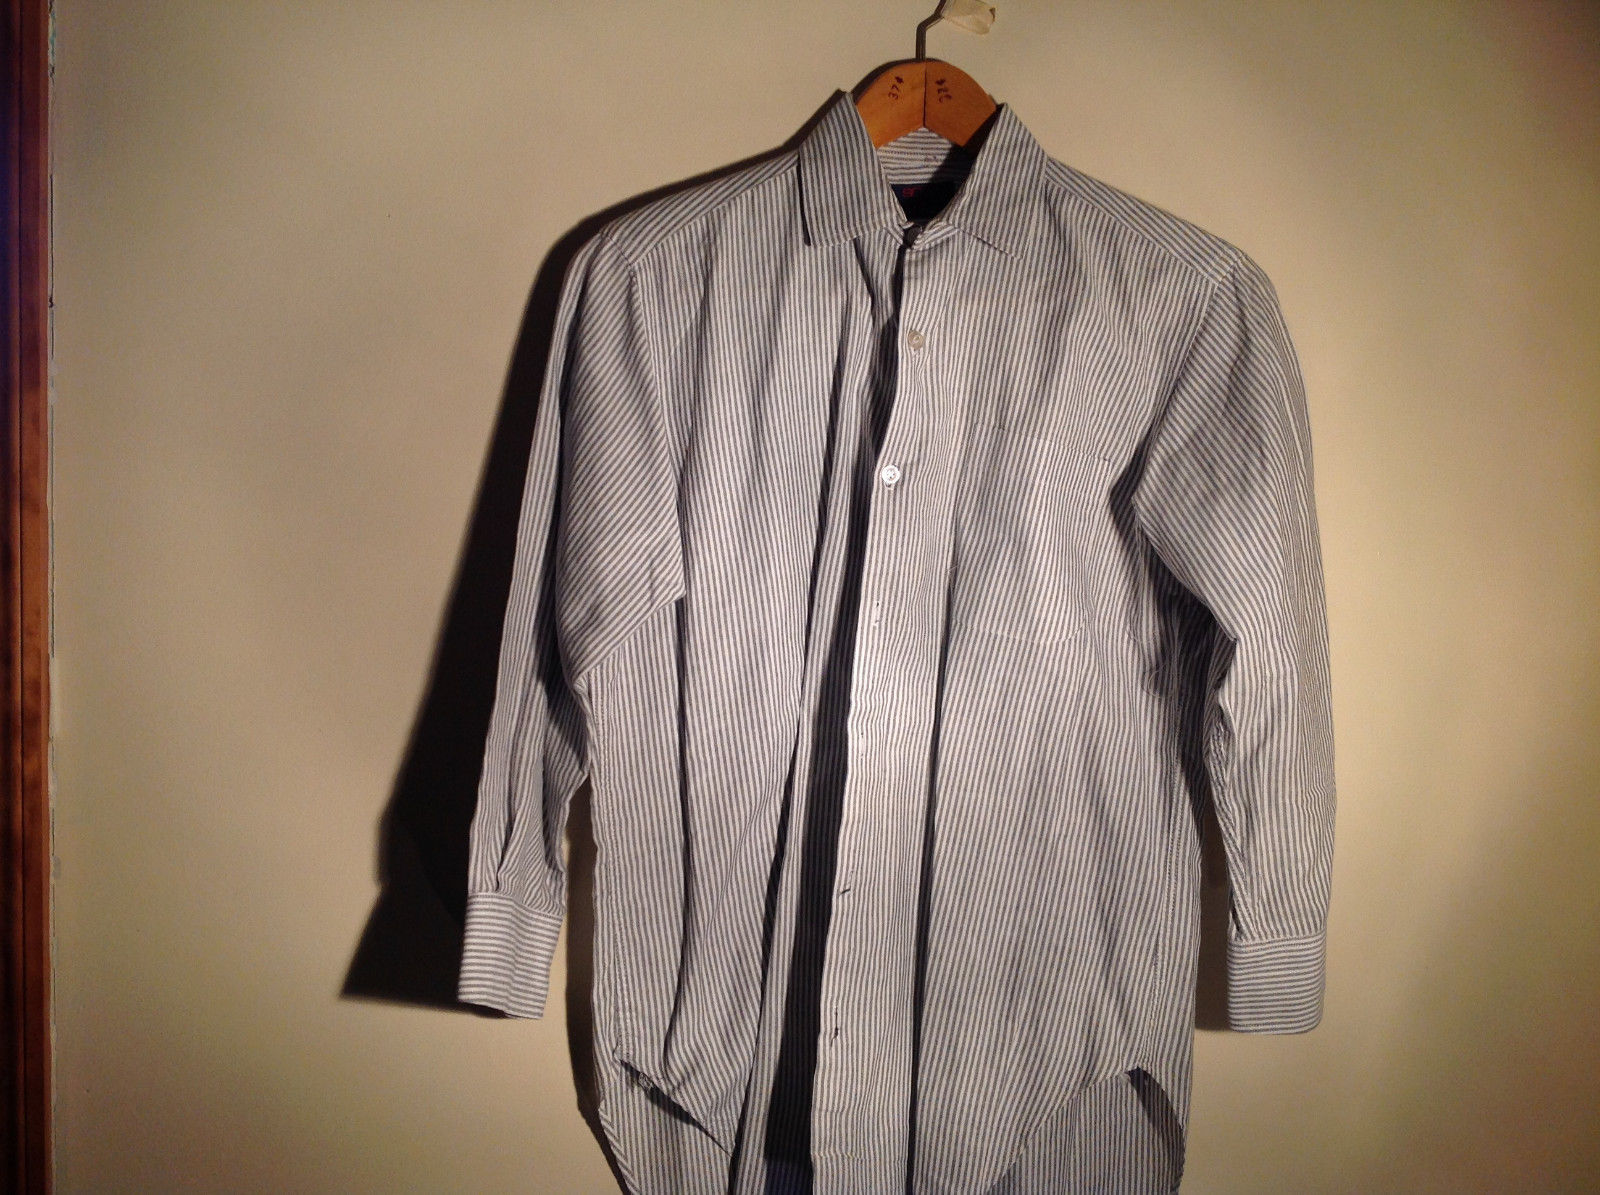 Sofia and Anne White Striped Long Sleeve Button Up Collared Dress Shirt